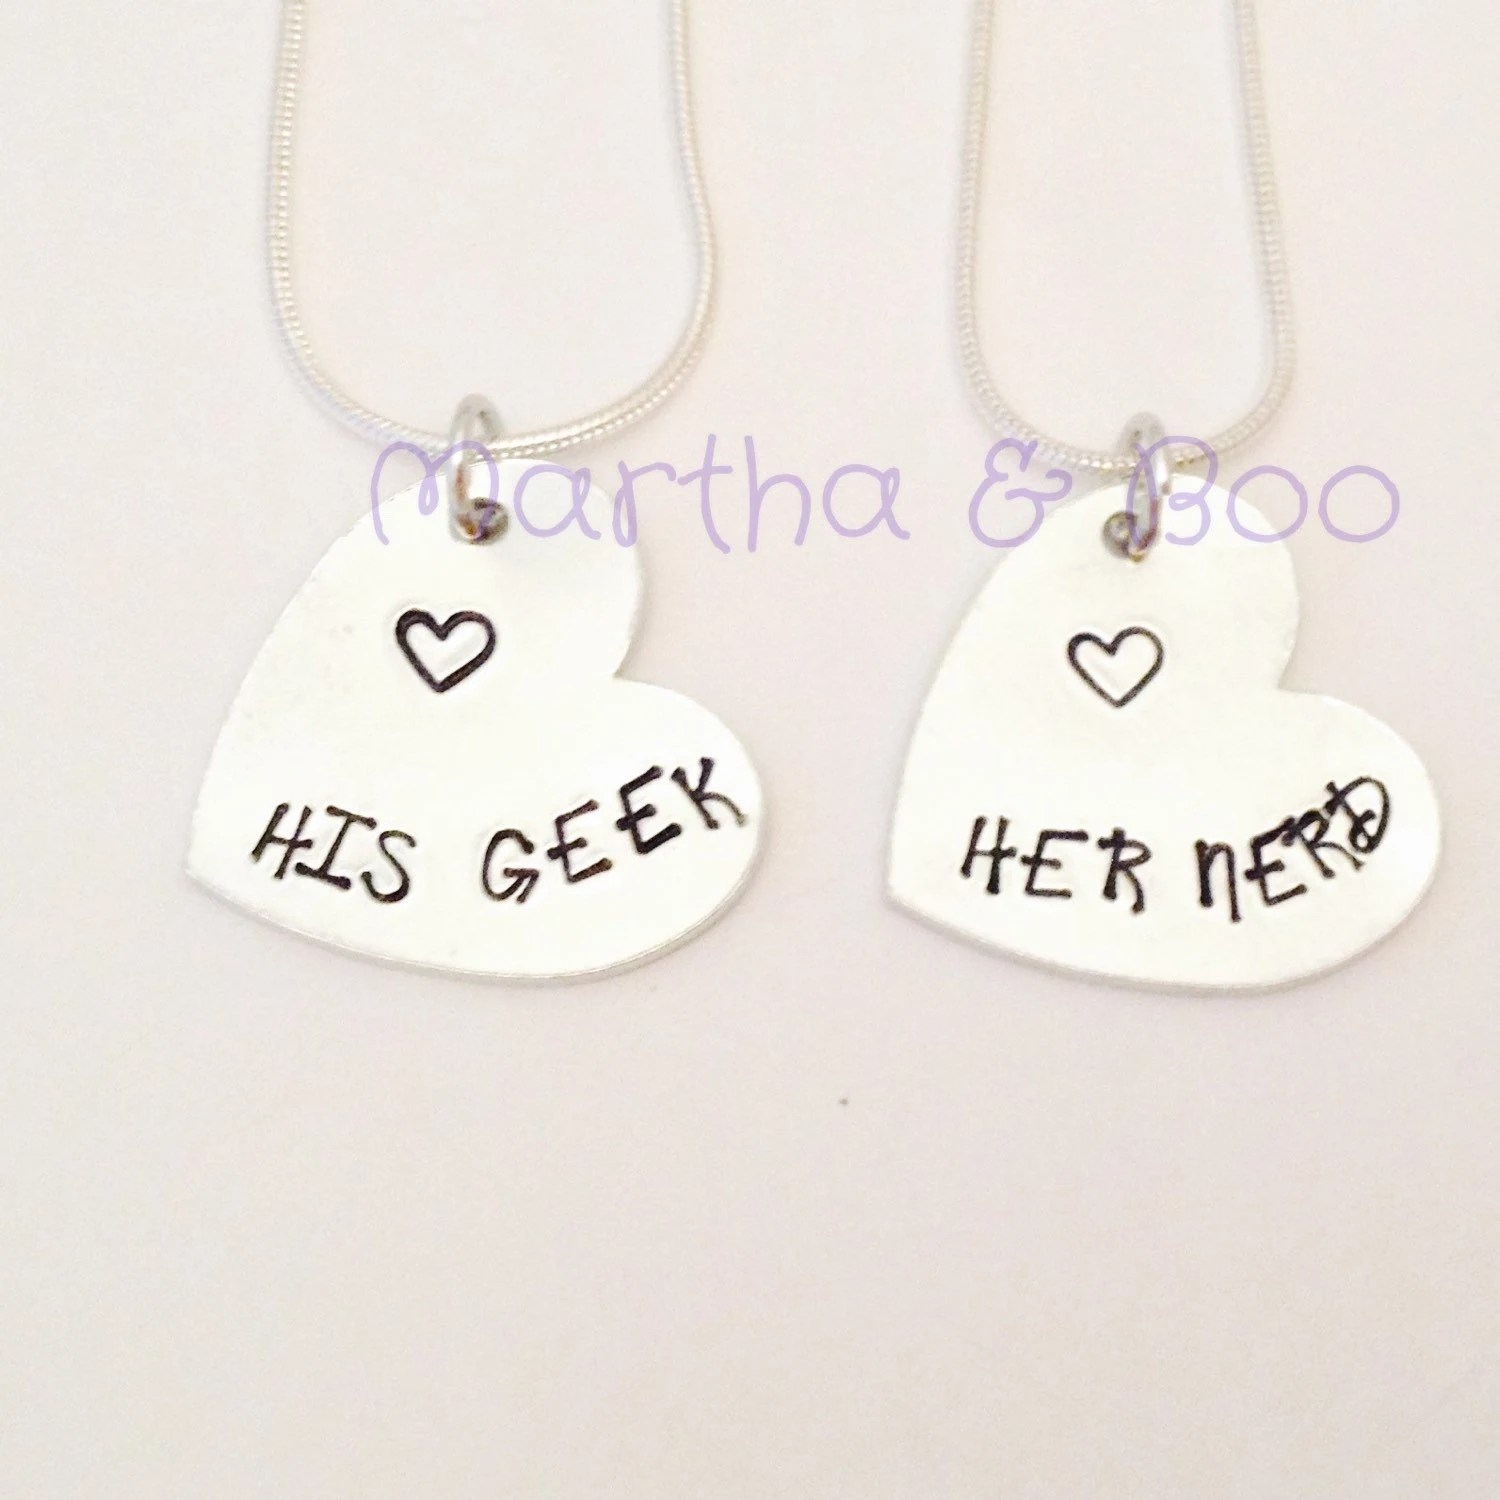 Neat Wedding Gift Her Wedding Gifts Gallery Styles Ideas 2018 His Couple Wedding His Hers Gifts Y Ll Actually Use Hers Gifts At Walmart His wedding gifts His And Hers Gifts